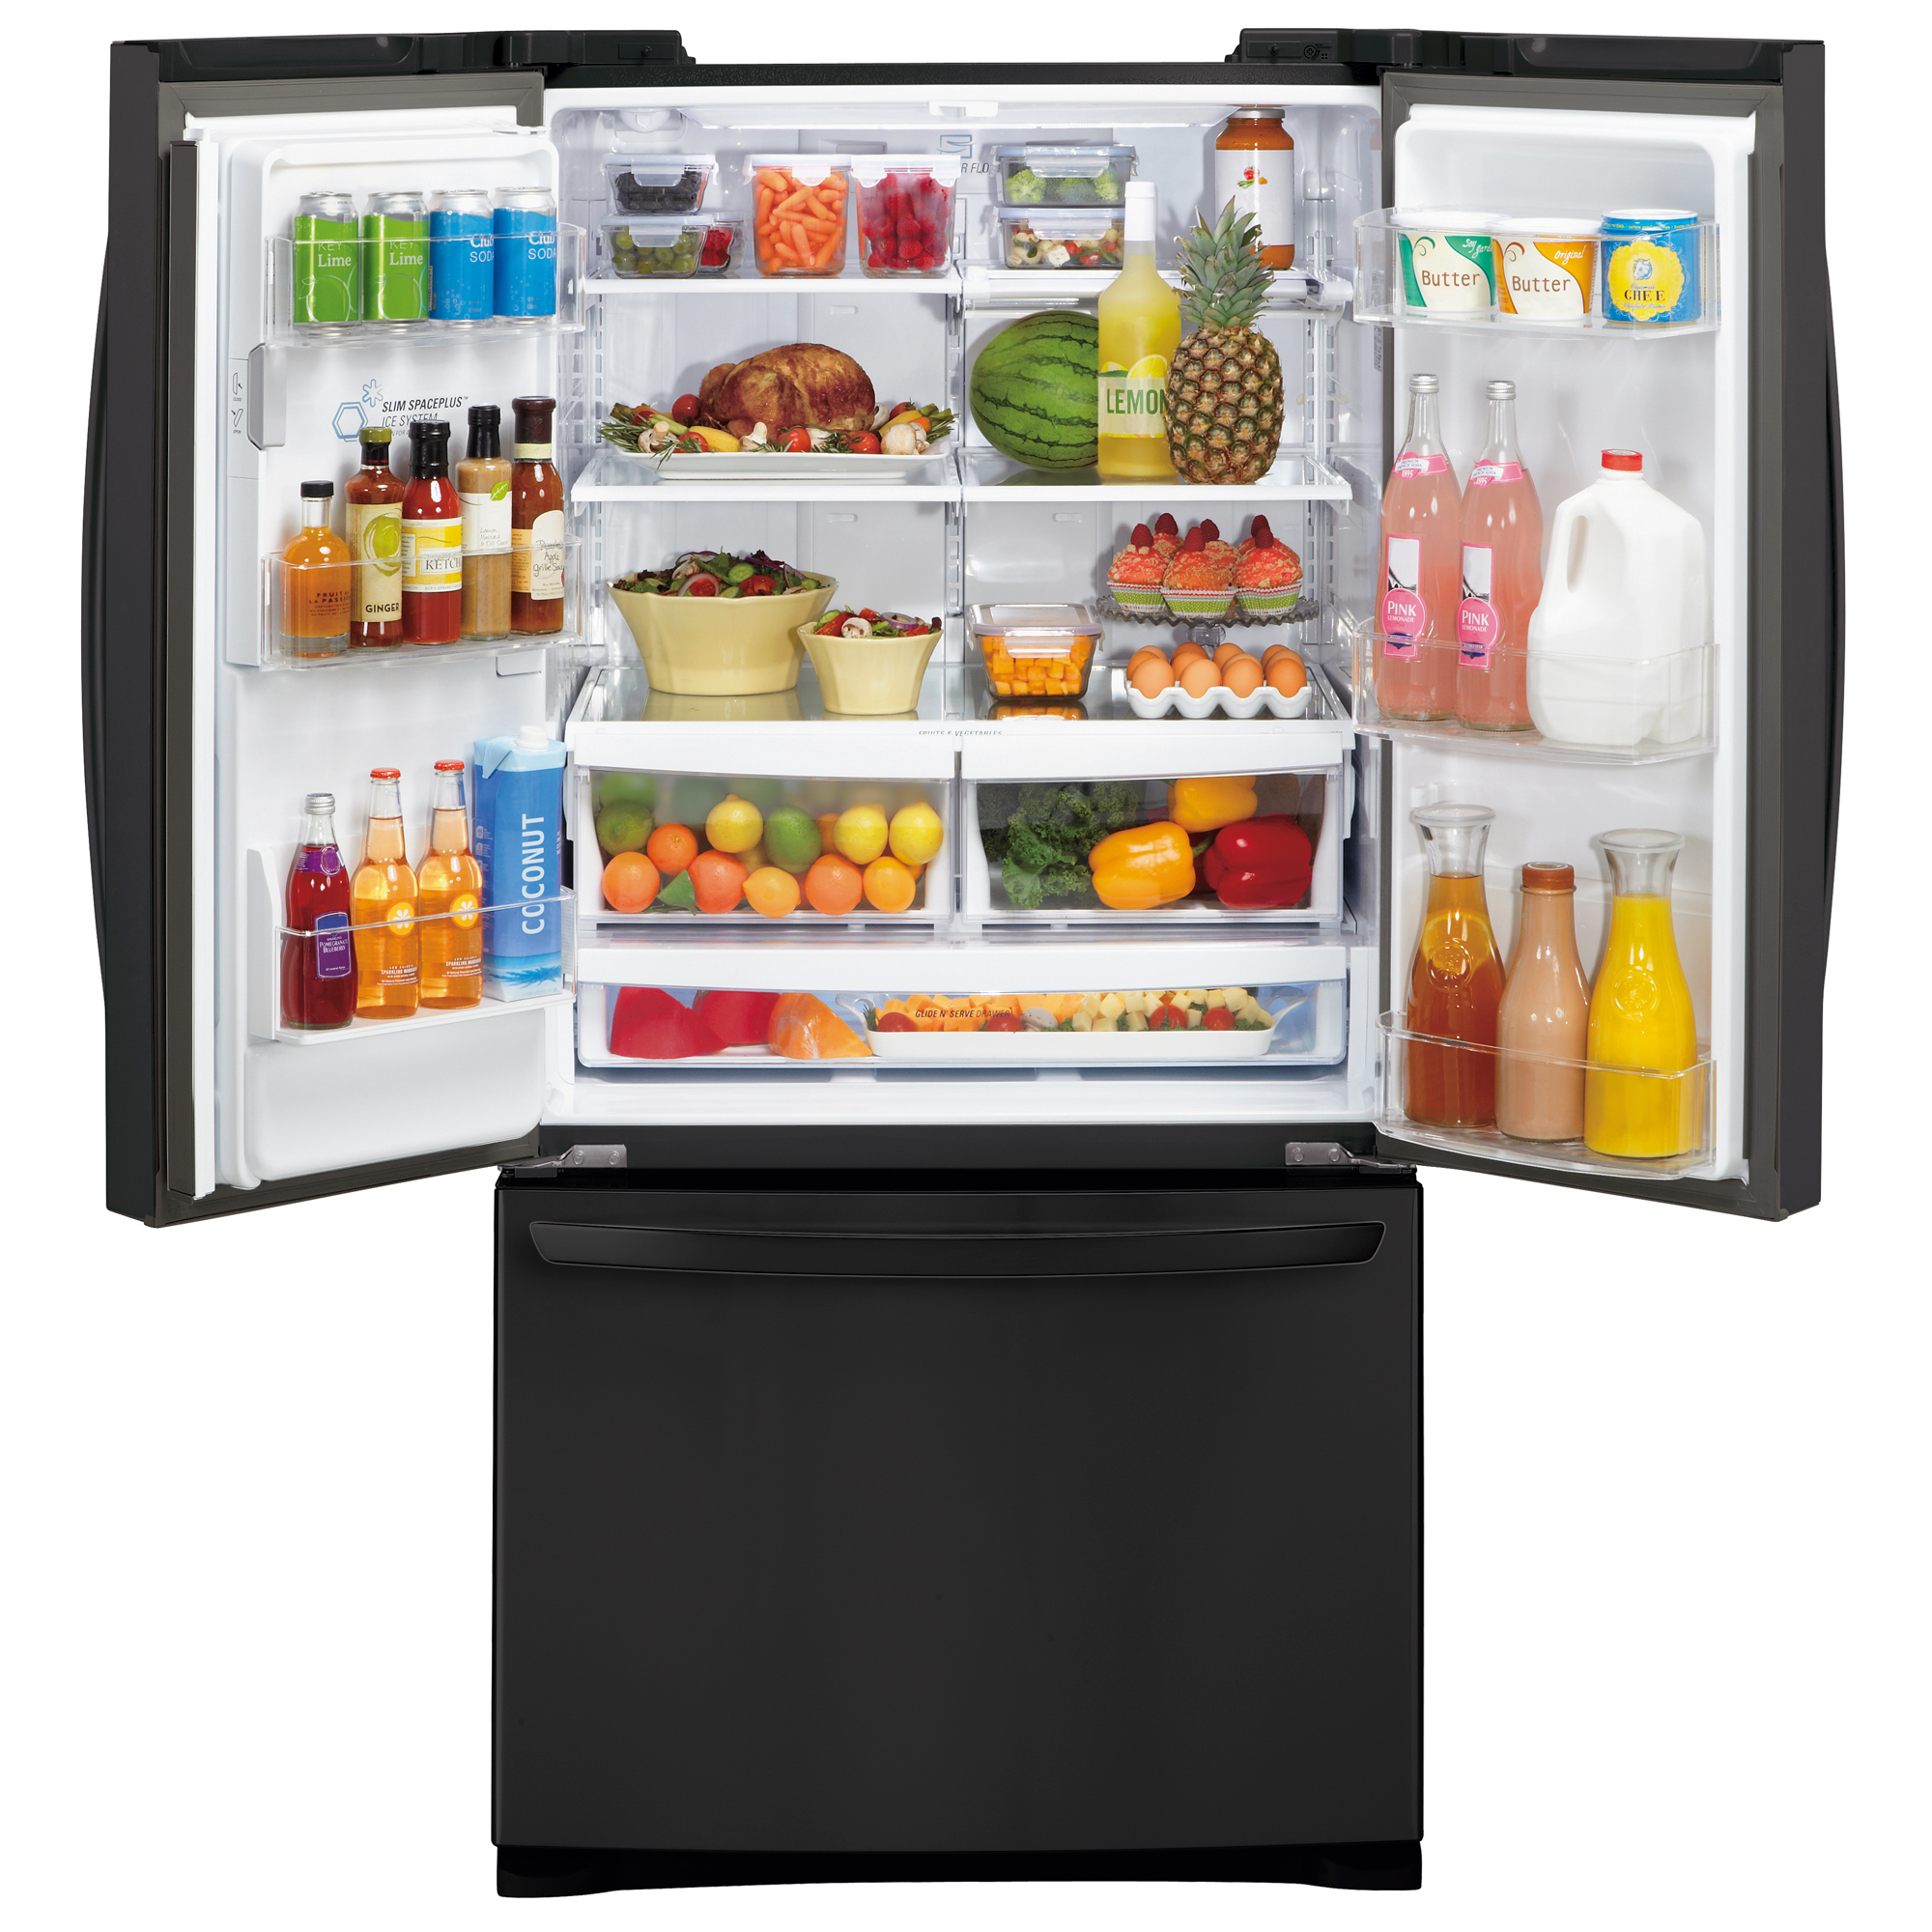 LG 27 cu. ft.  French Door Bottom-Freezer Refrigerator - Black